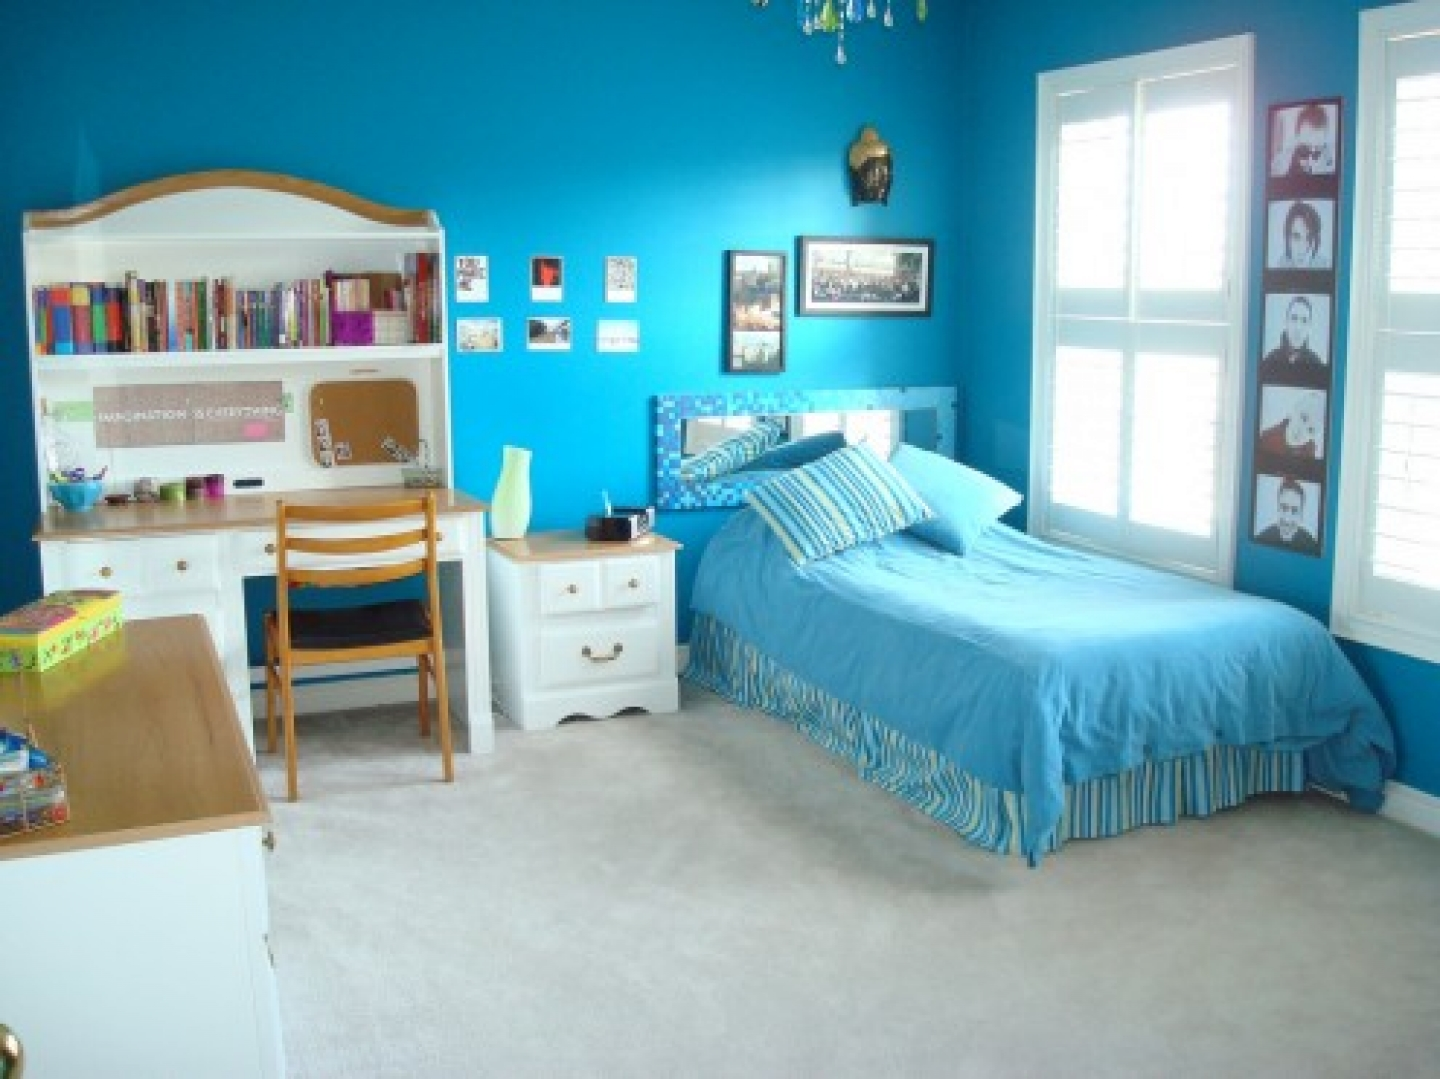 decorating ideas for teenage bedroom walls photo - 2